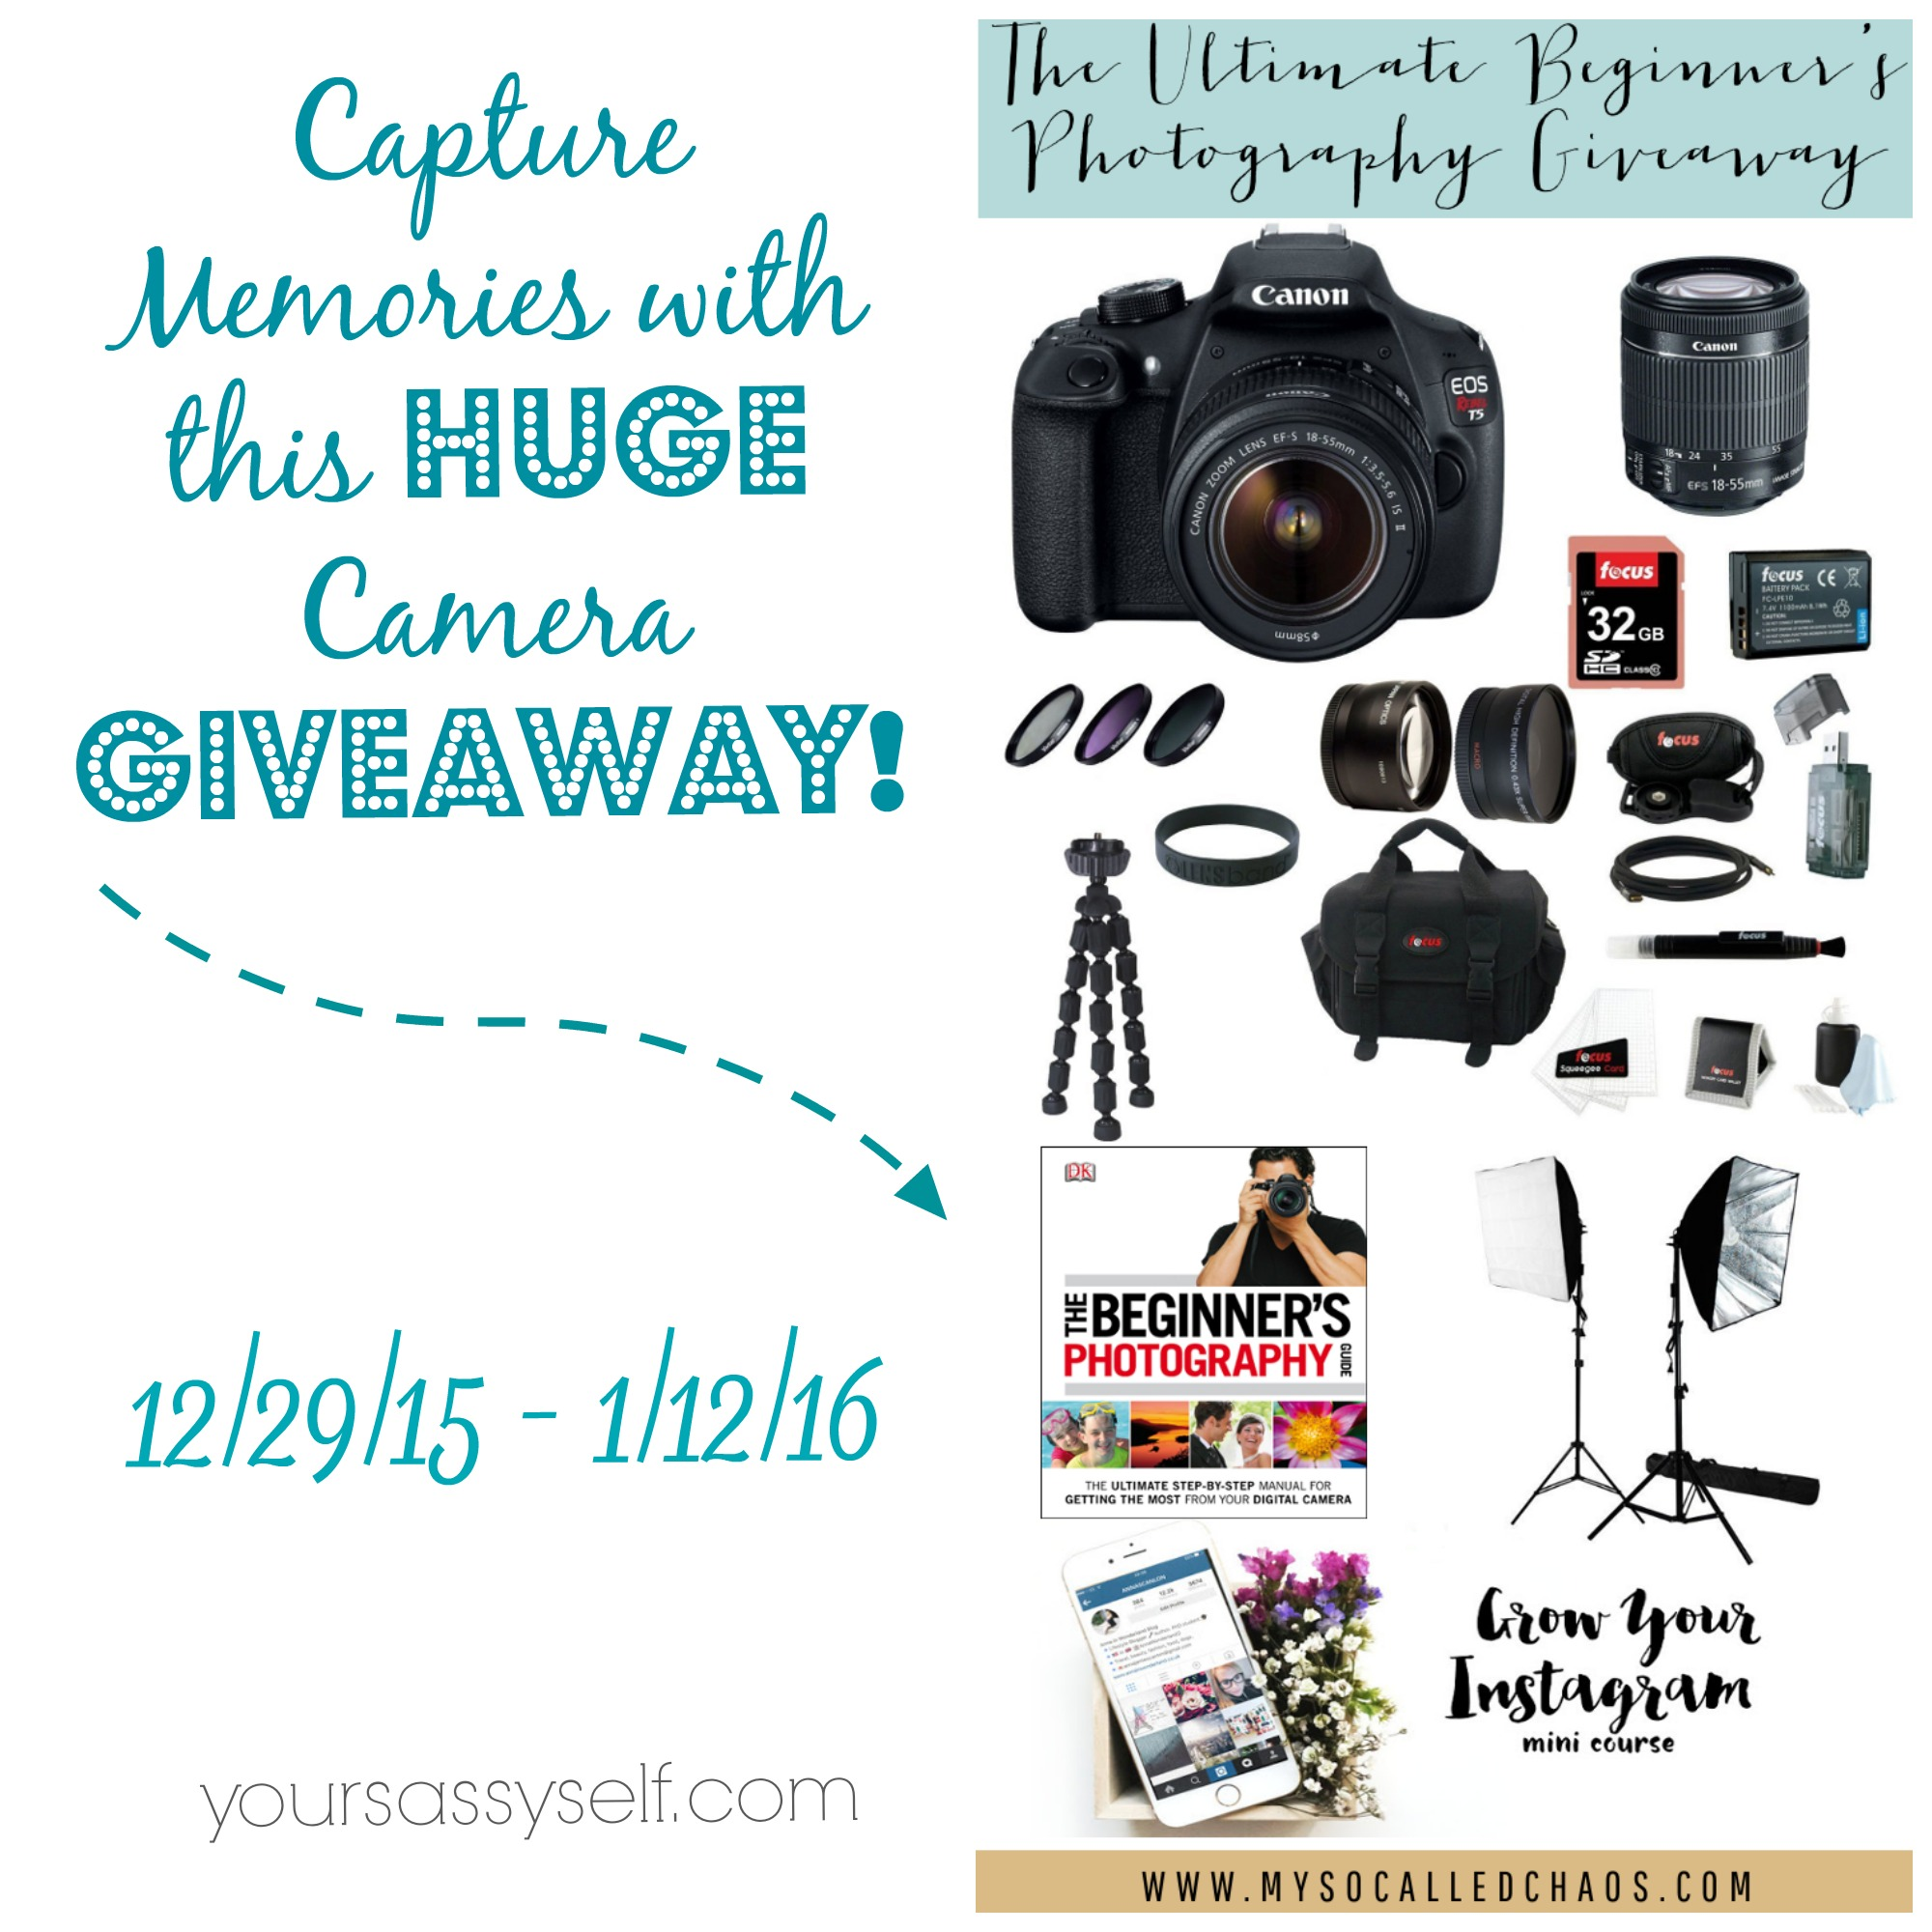 Capture Memories with this Huge Camera Giveaway